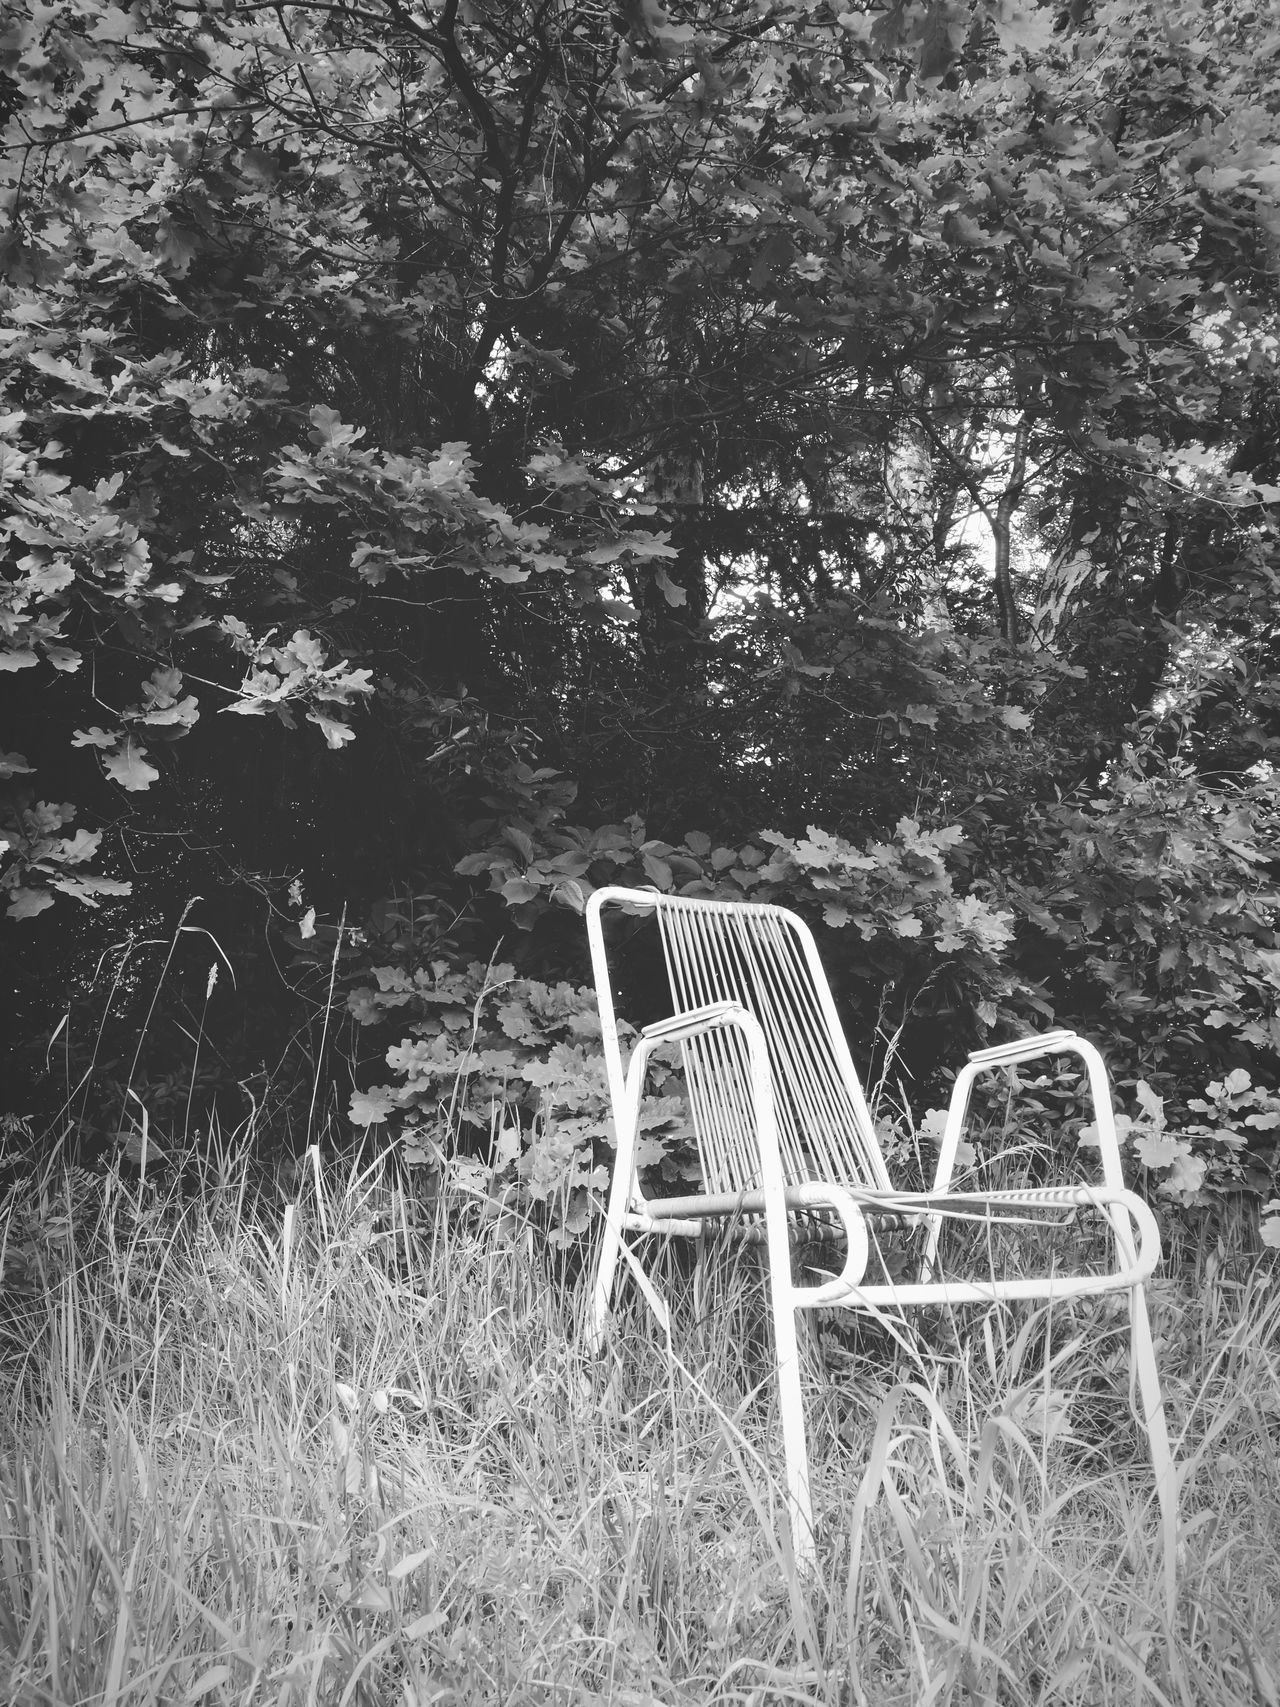 Tree No People Day Plant Nature Growth Outdoors Grass Chair Sitting Outside Tranquility Blackandwhite Blackandwhite Photography Lost Places Live For The Story The Street Photographer - 2017 EyeEm Awards EyeEmNewHere